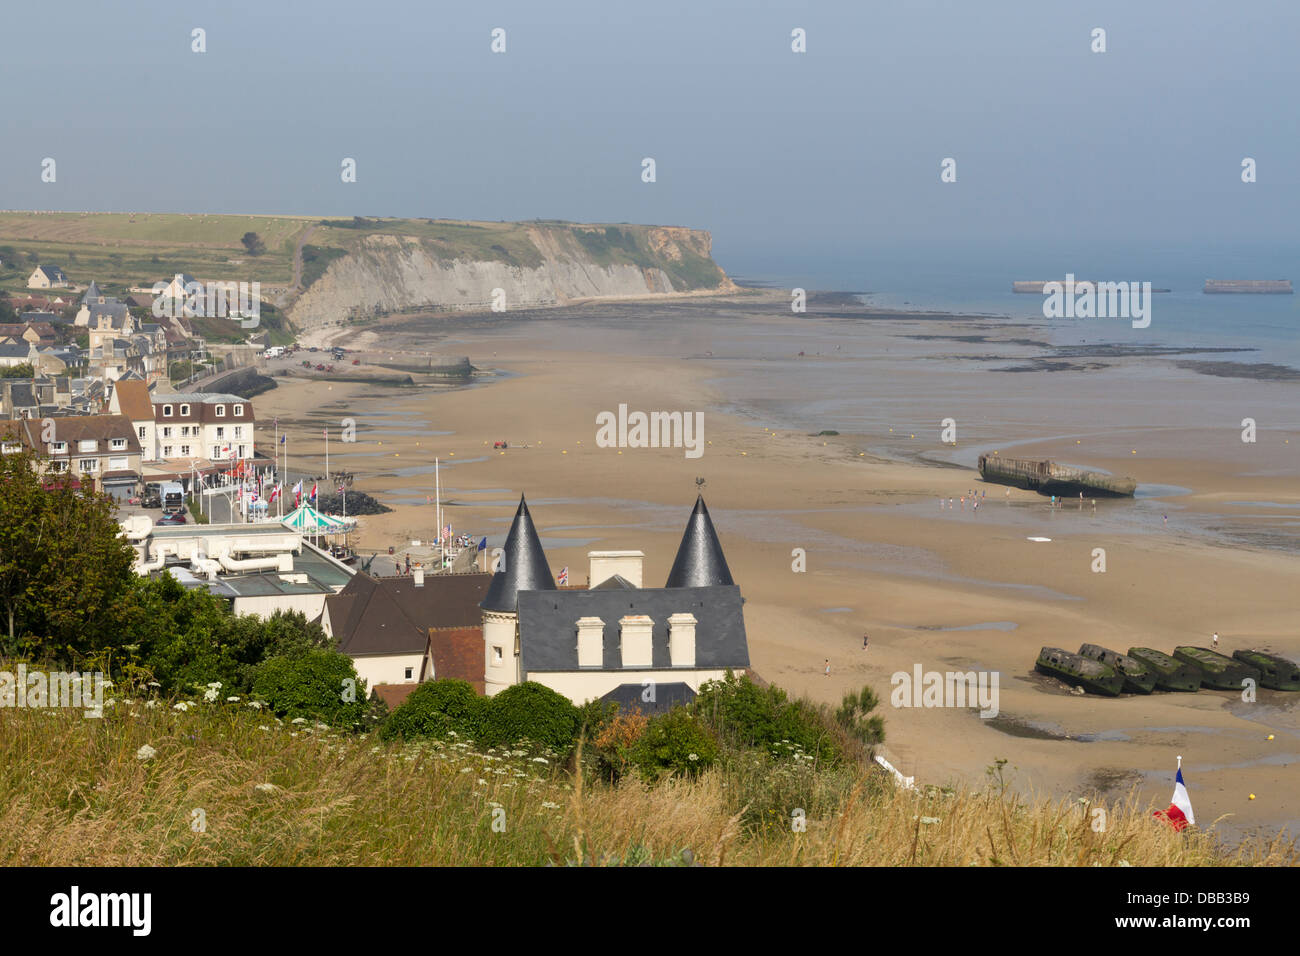 France Normandy, Arromanches, town & Mulberry harbour beach - Stock Image